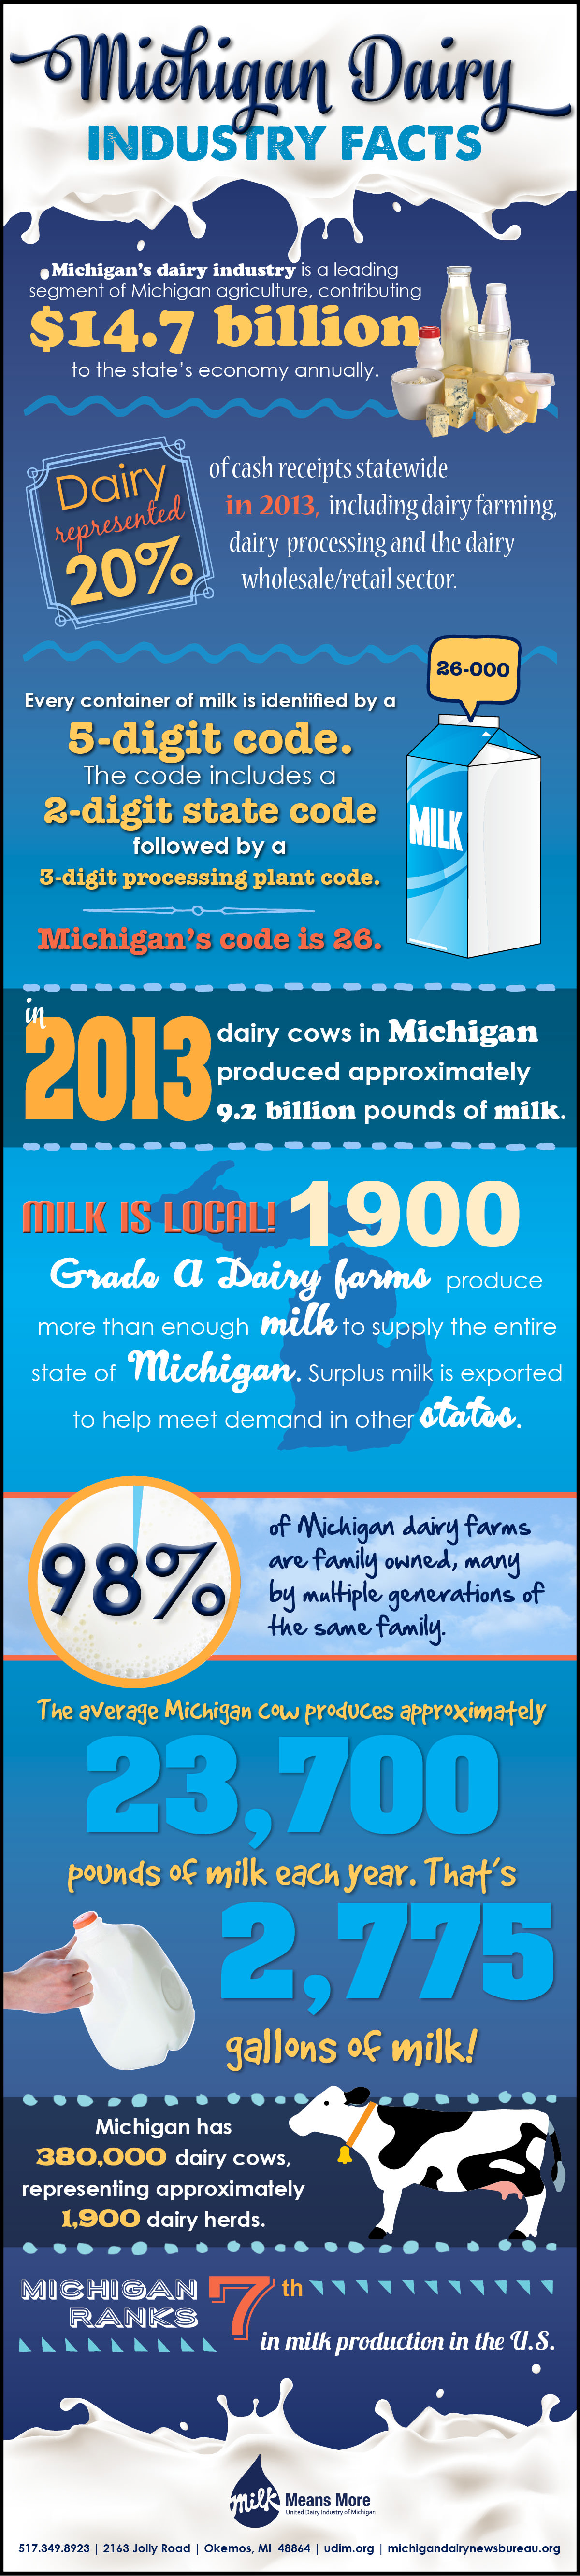 Michigan Milk is Local Infographic @MilkMeansMore